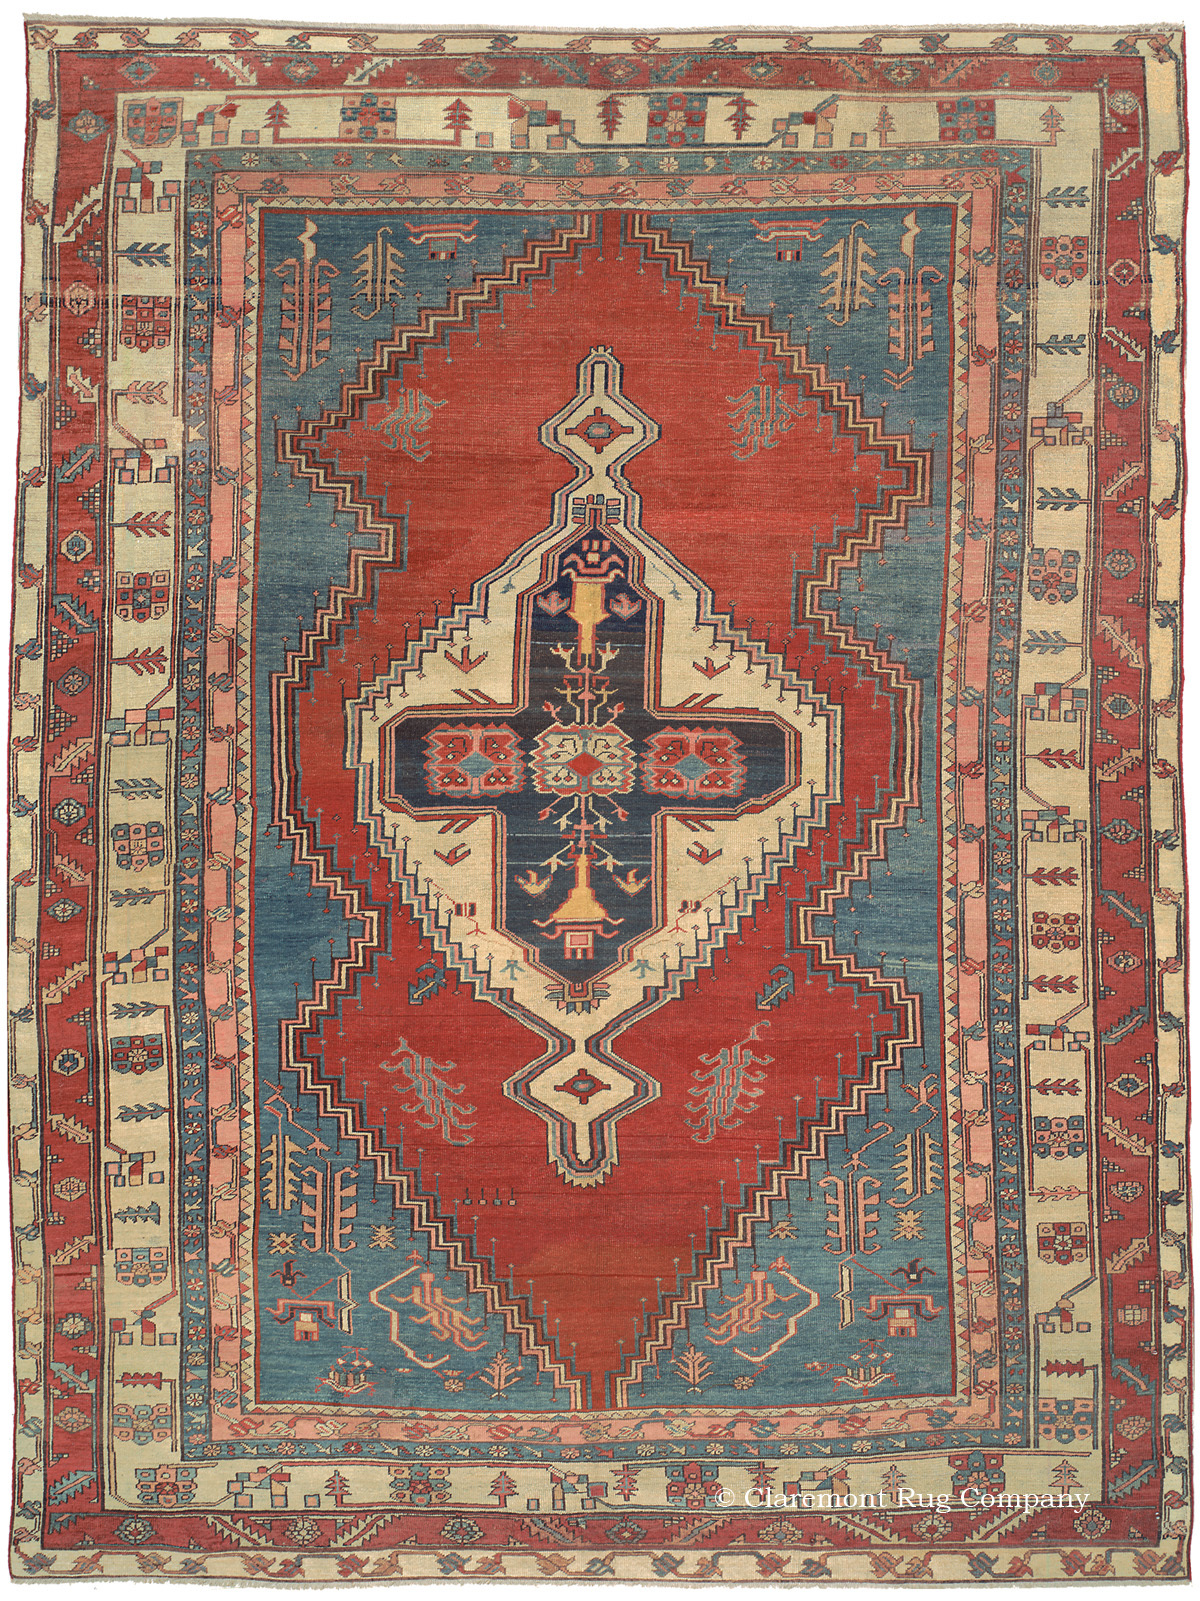 Claremont Rug Company Exhibits U201cBest Of The Best Antique Rugs Sold In 2014u201d  | Business Wire